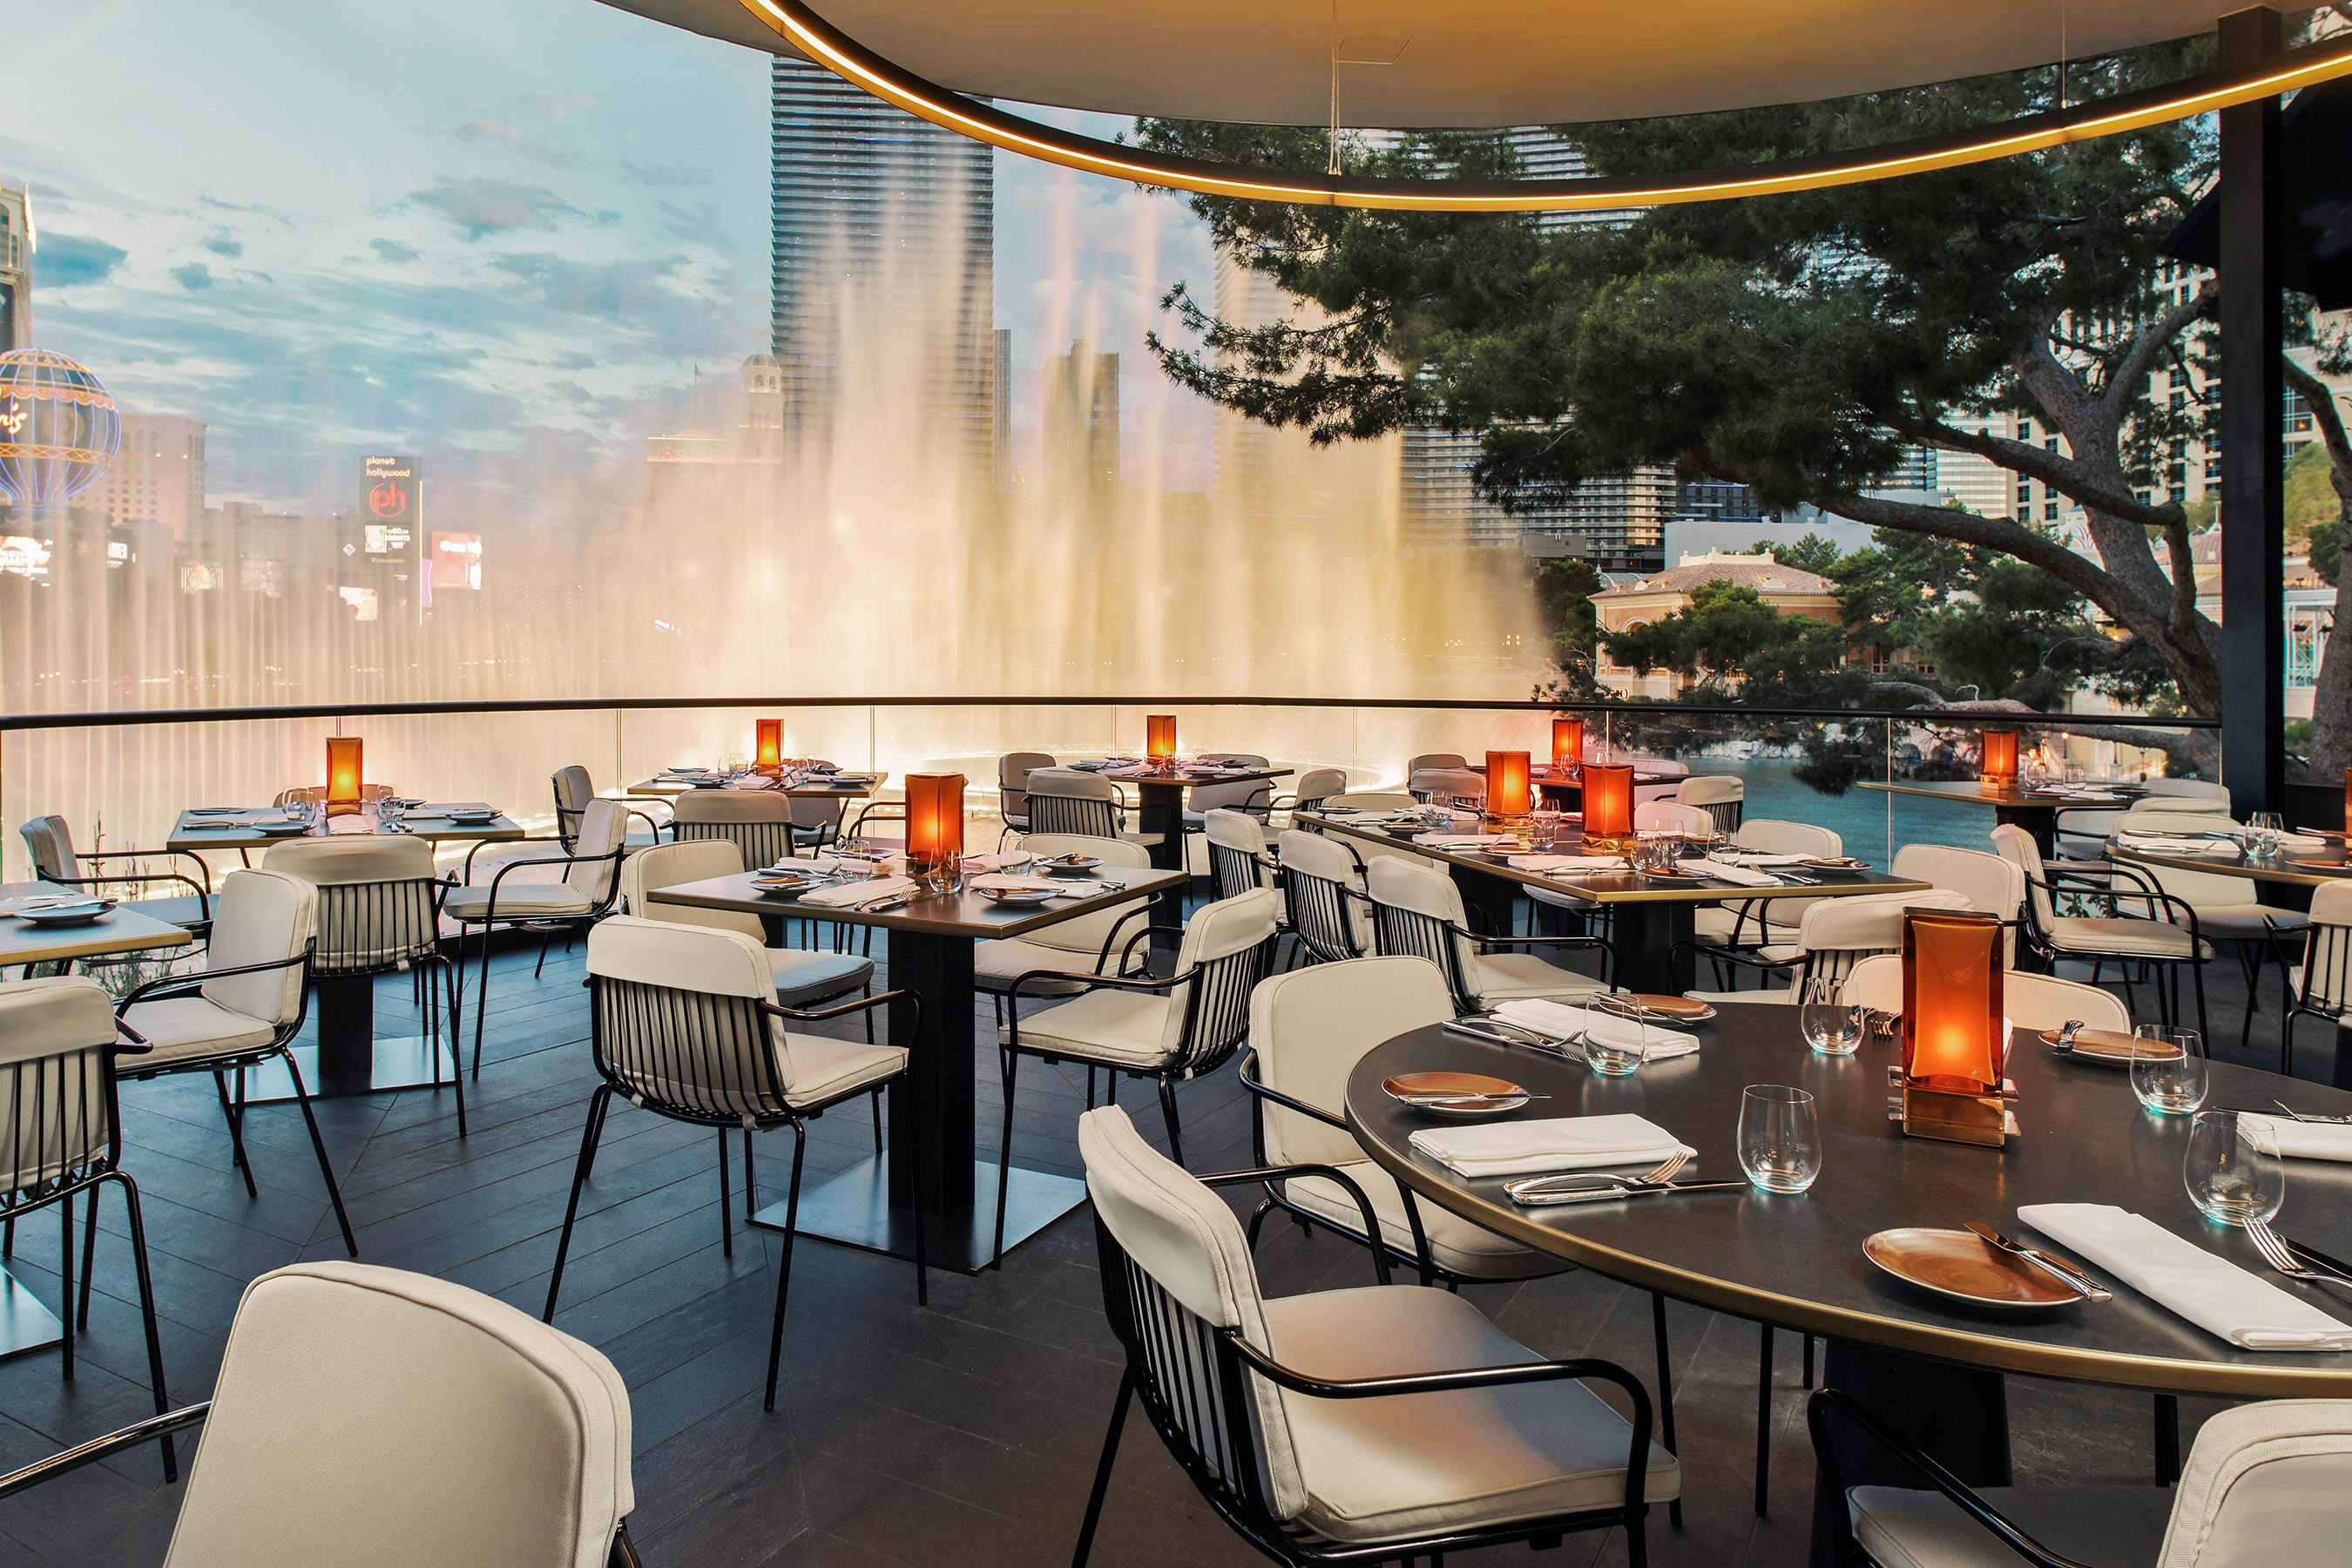 Cucina By Wolfgang Puck Las Vegas Nv Wolfgang Puck Debuts Spago Overlooking Bellagio Fountains No Vacancy